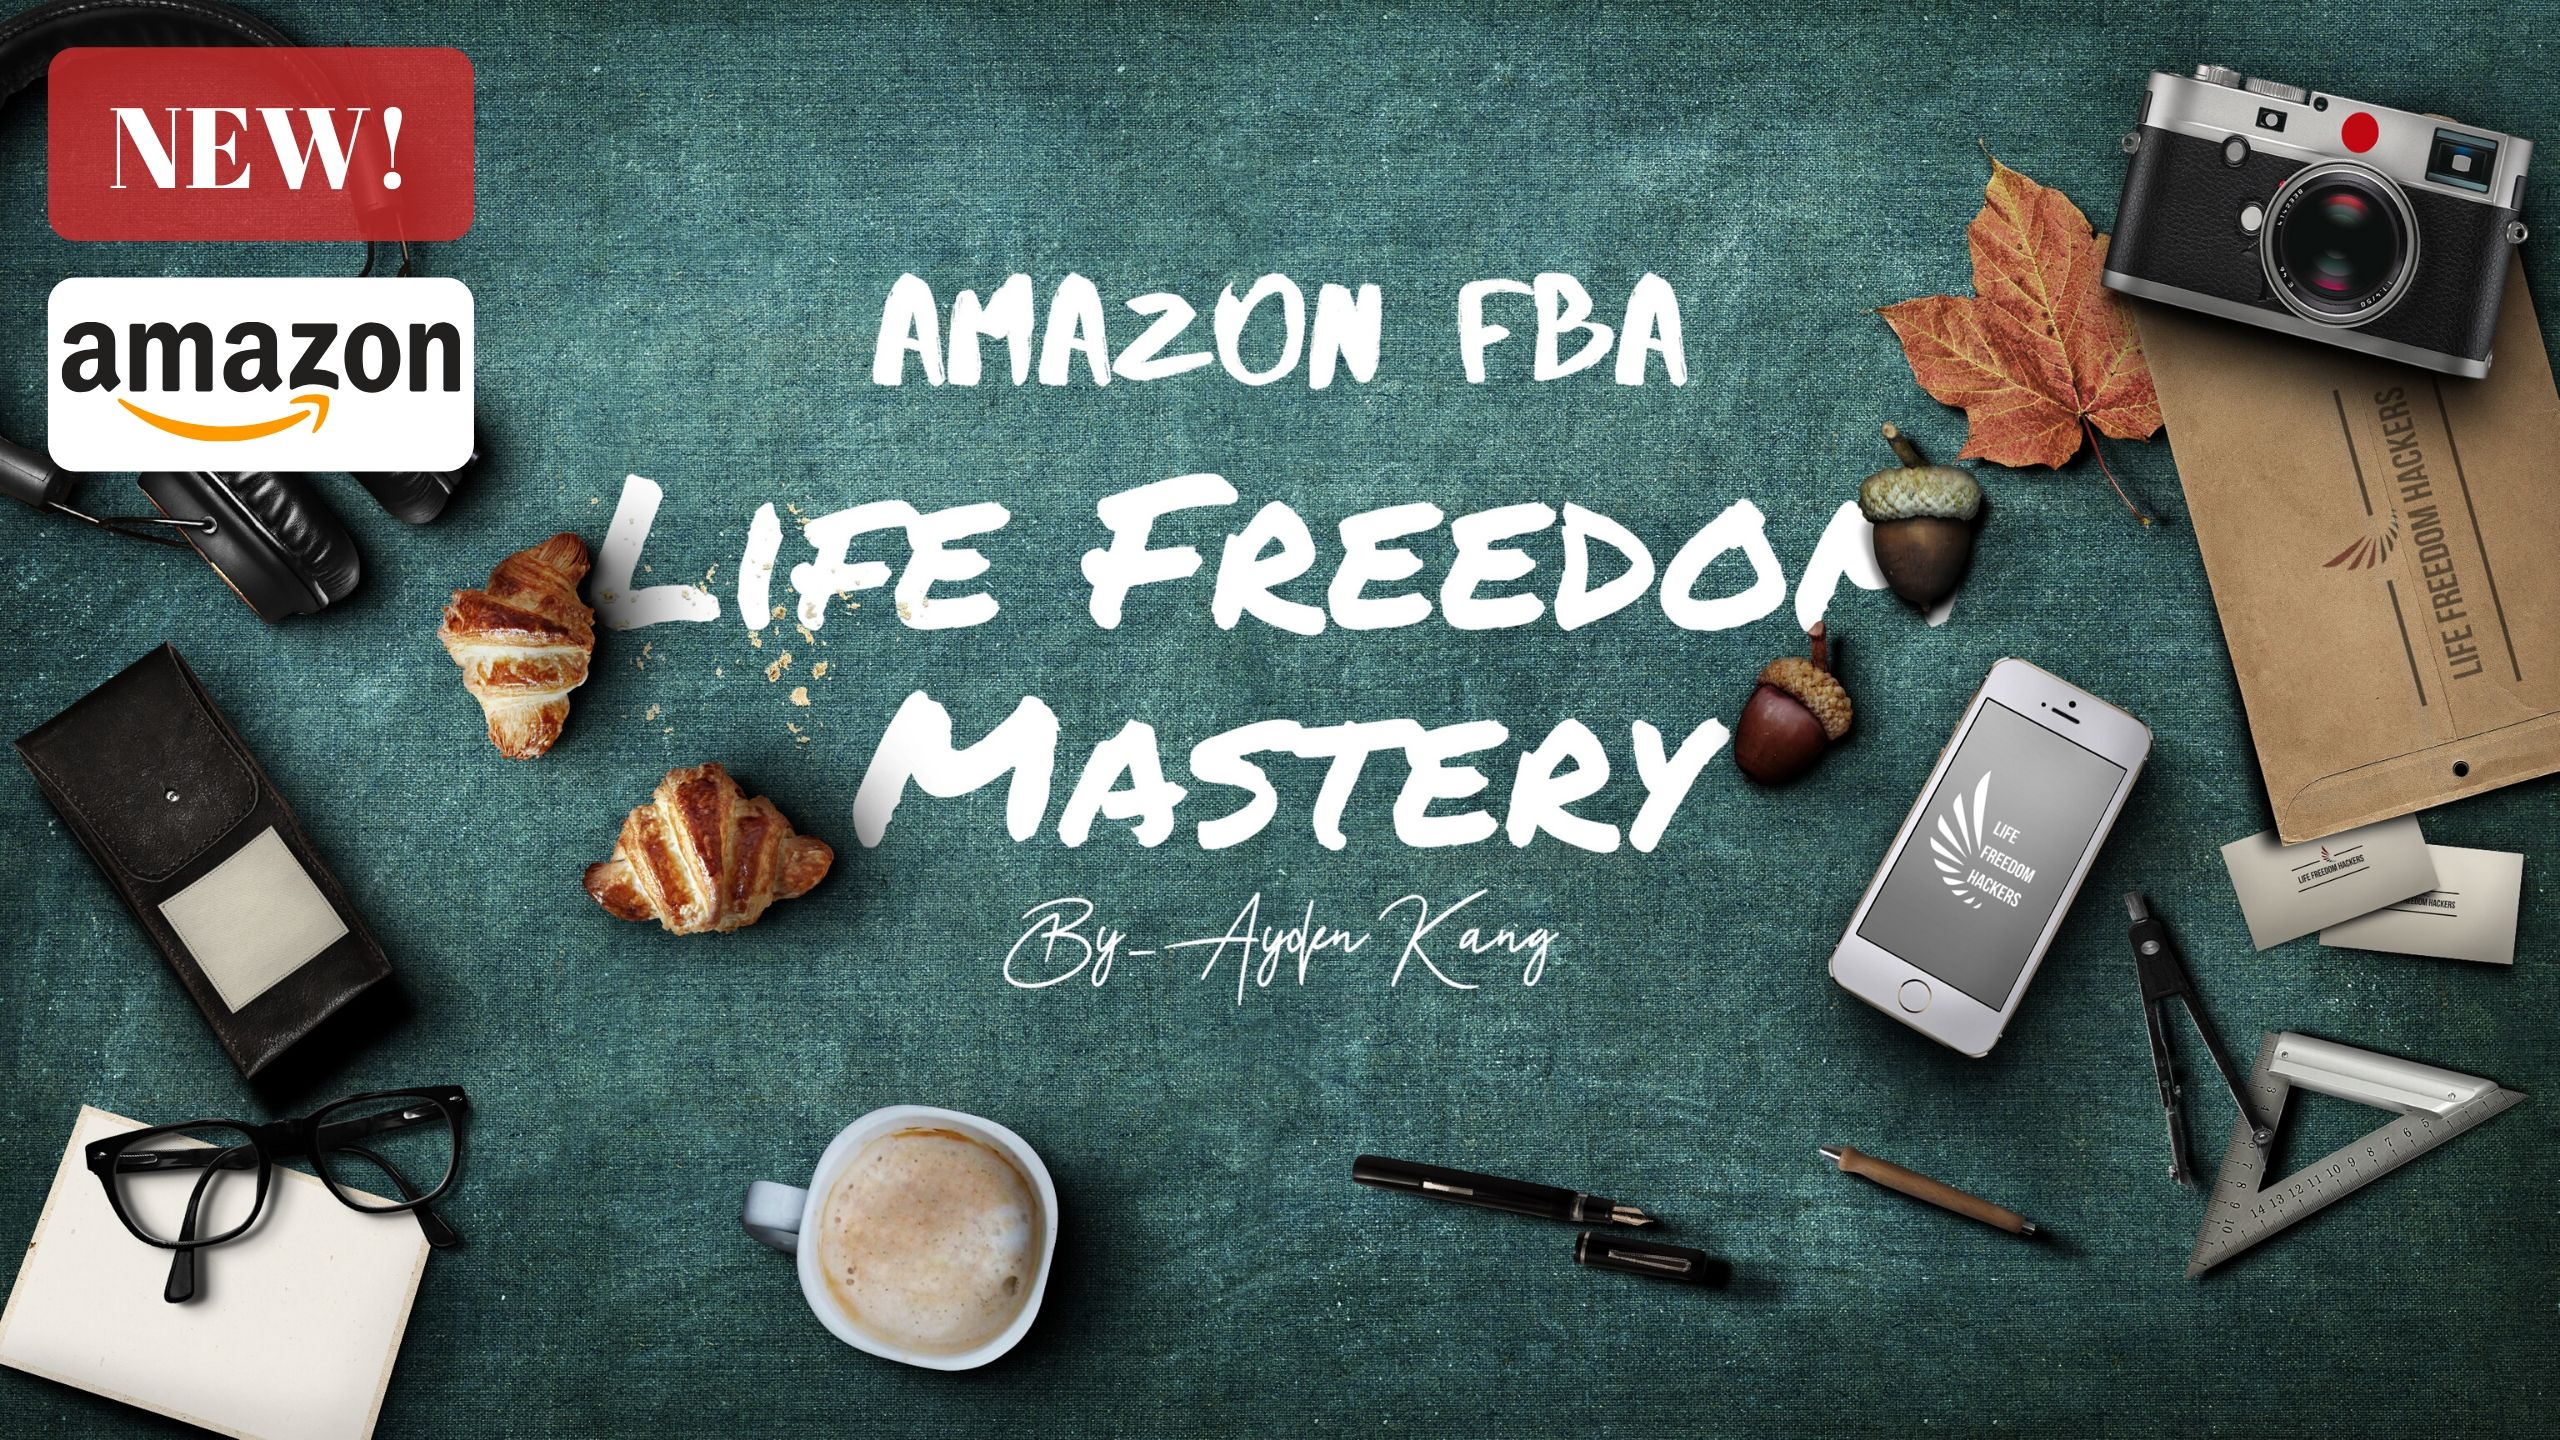 Amazon FBA Life Freedom Mastery (아마존 FBA 정규 과정)